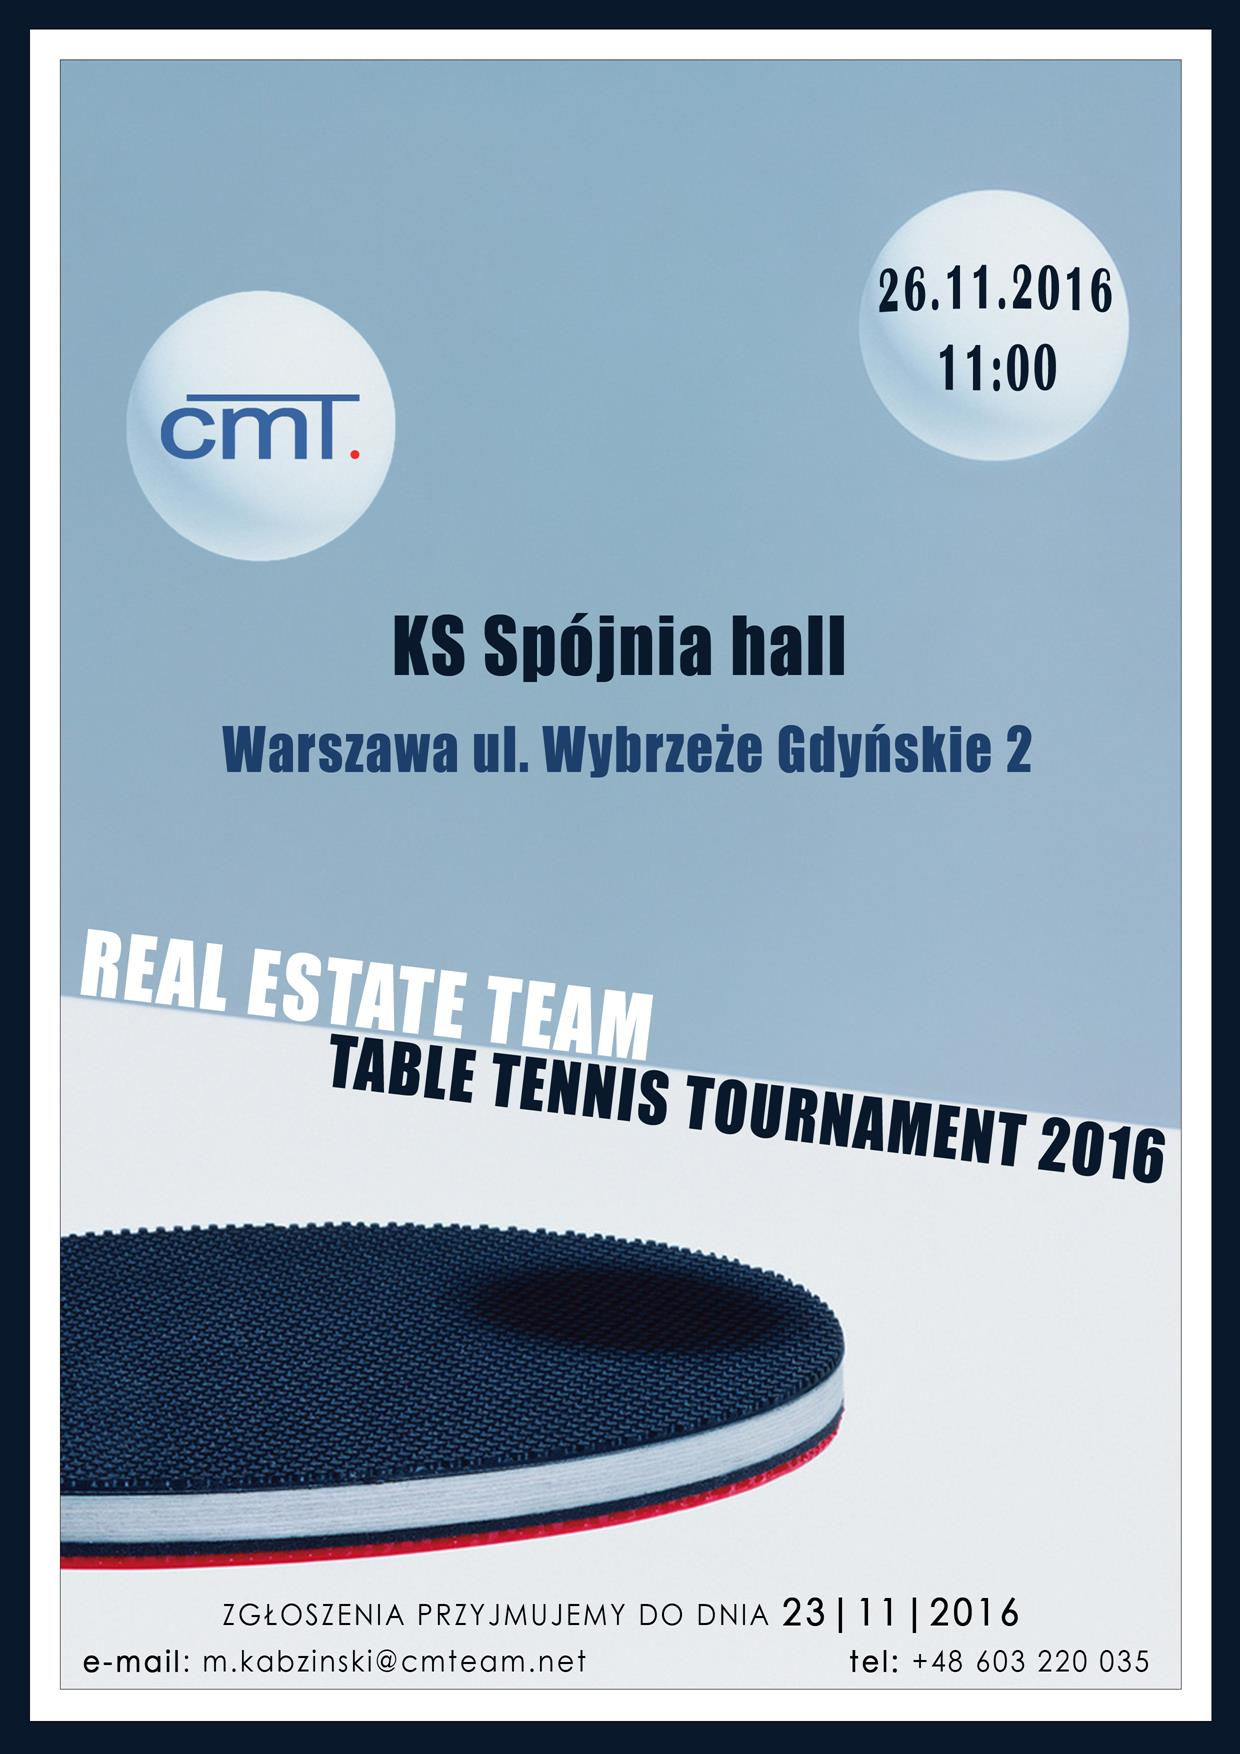 I edycja Real Estate Team Table Tennis Tournament